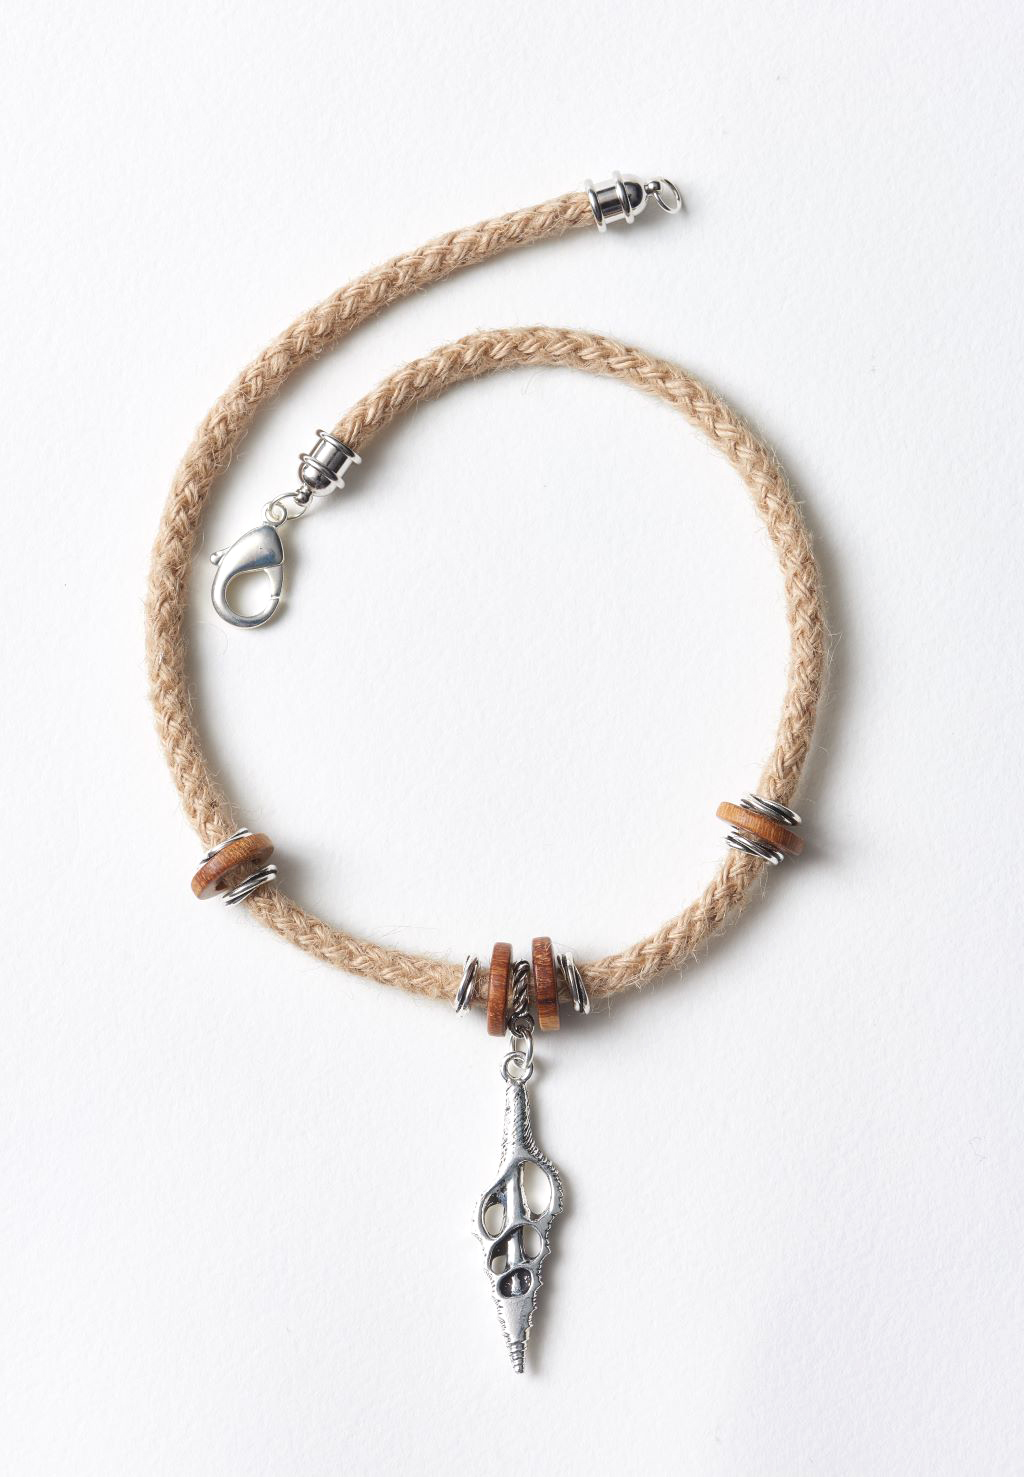 cut-spindle-rope-necklace2-1024px.jpg